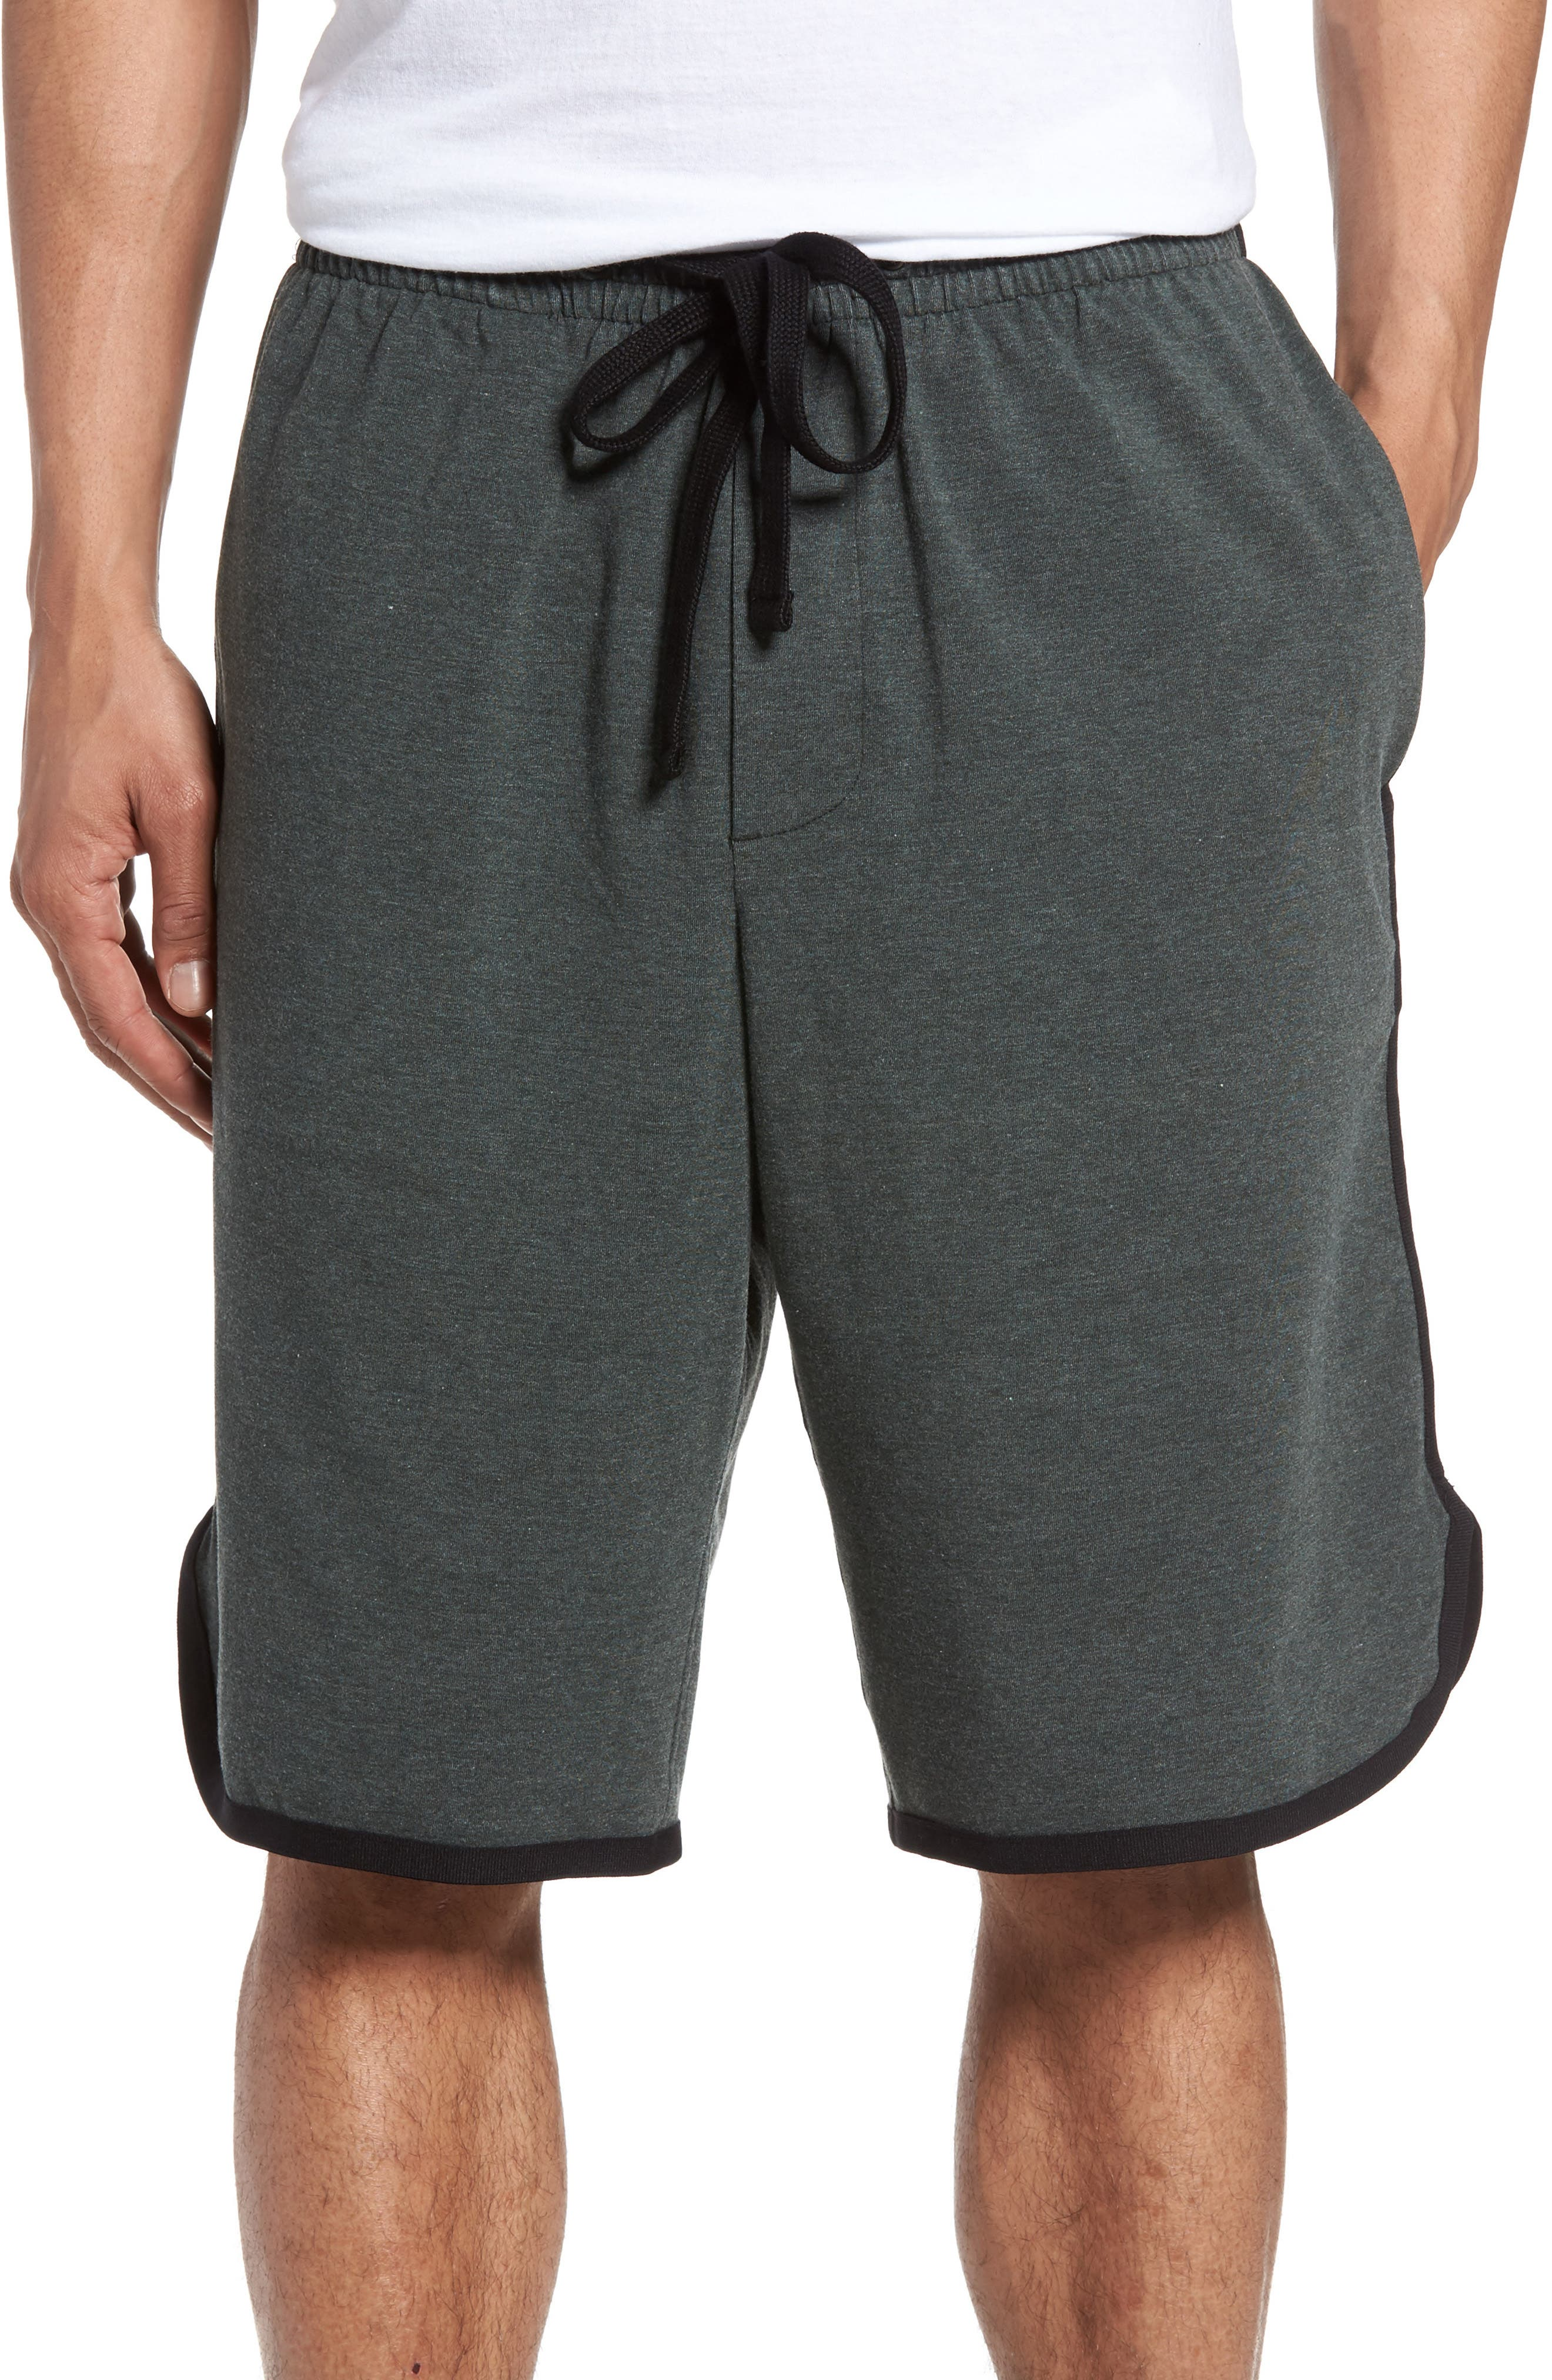 James Perse Drawstring Basketball Shorts